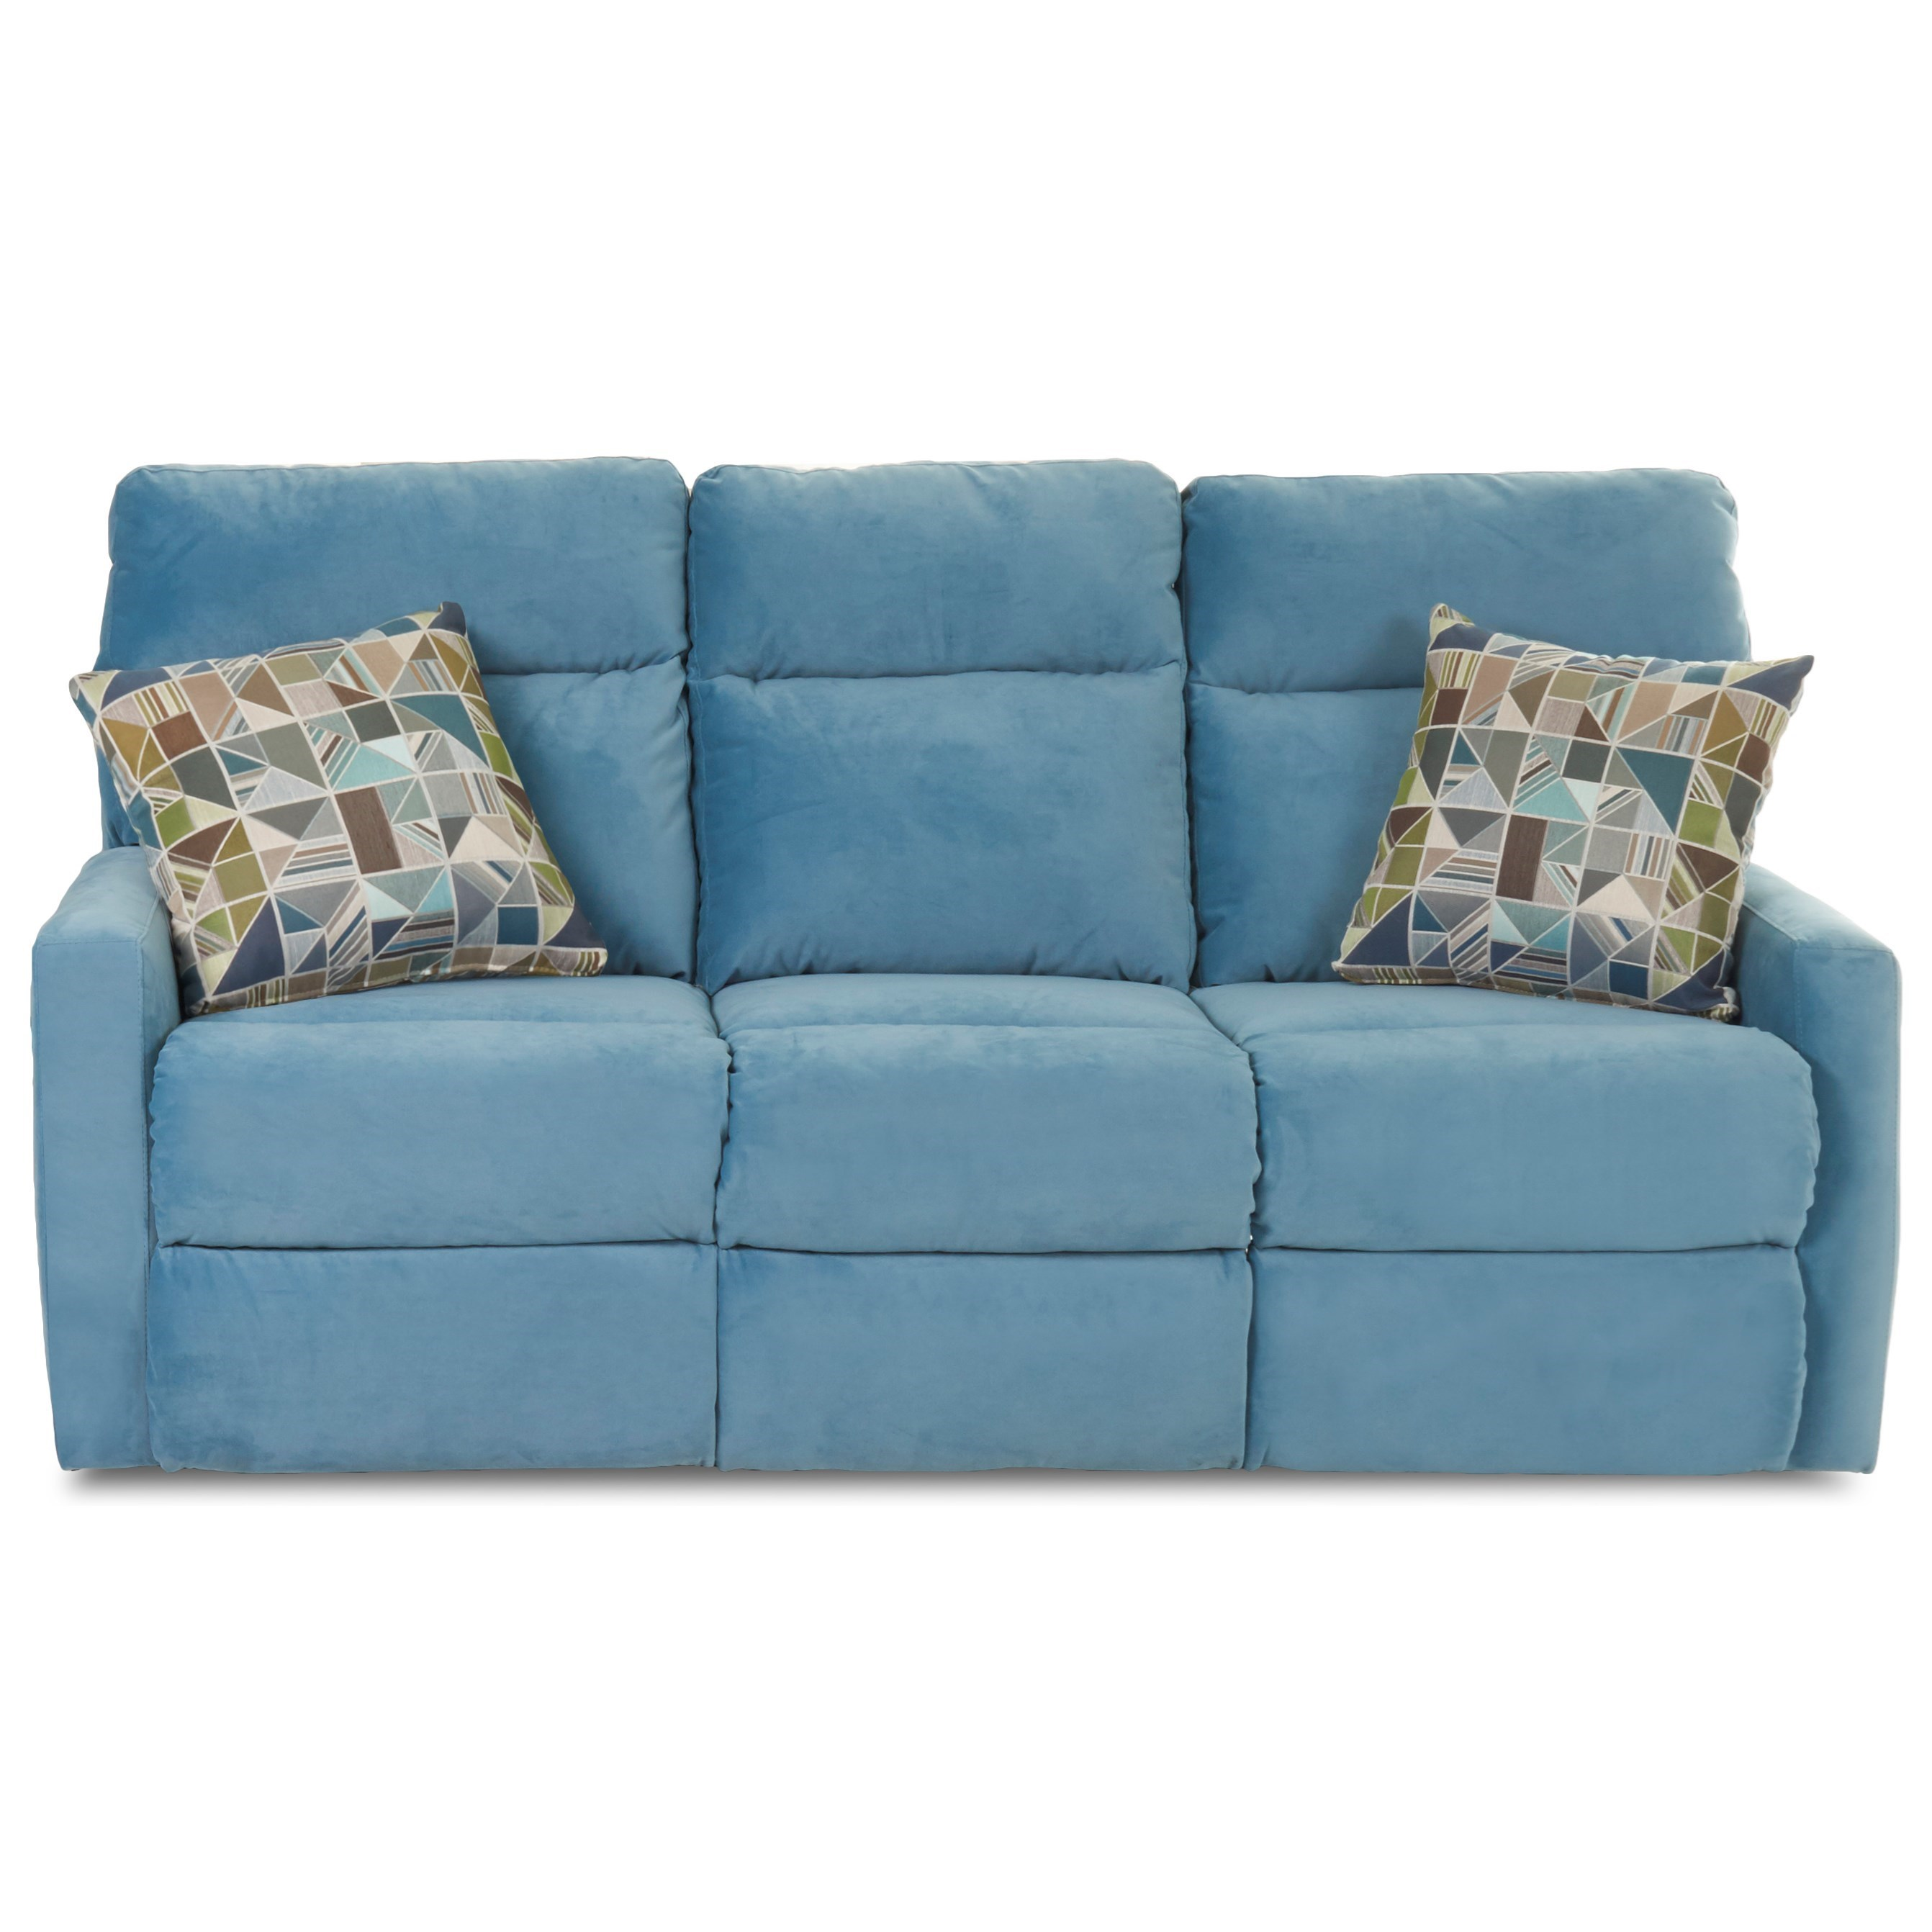 Daphne Power Reclining Sofa w/ Pillows by Klaussner at Johnny Janosik